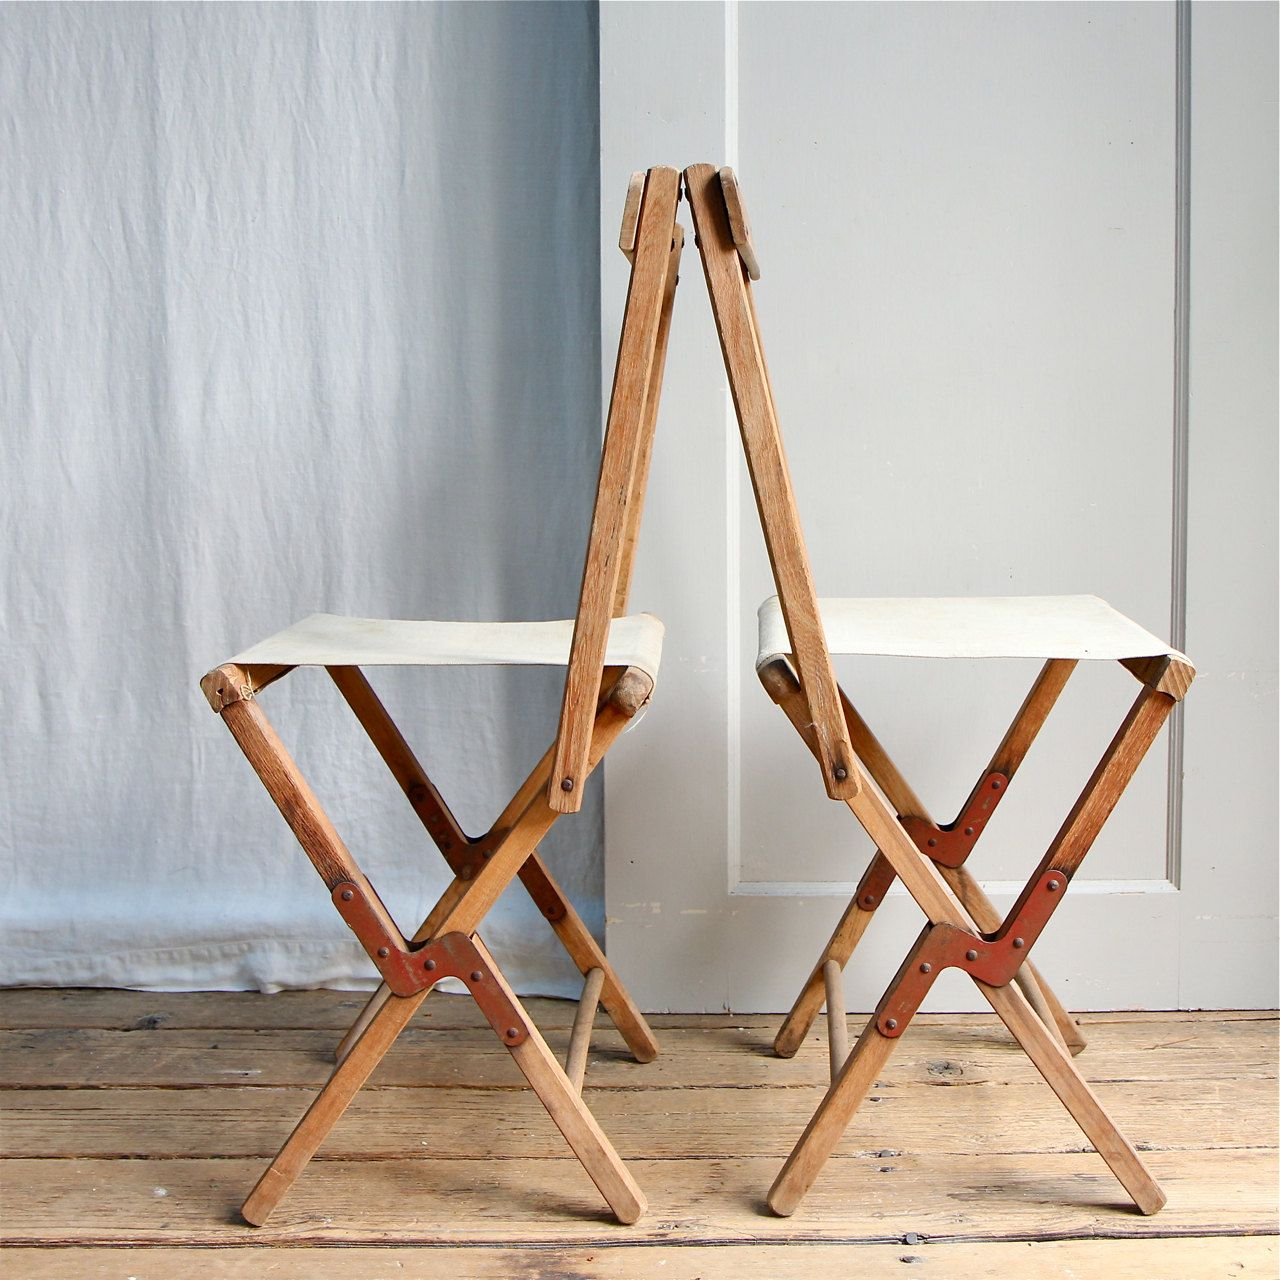 I Ll Take Two Vintage Rustic Folding Camp Chair Stool